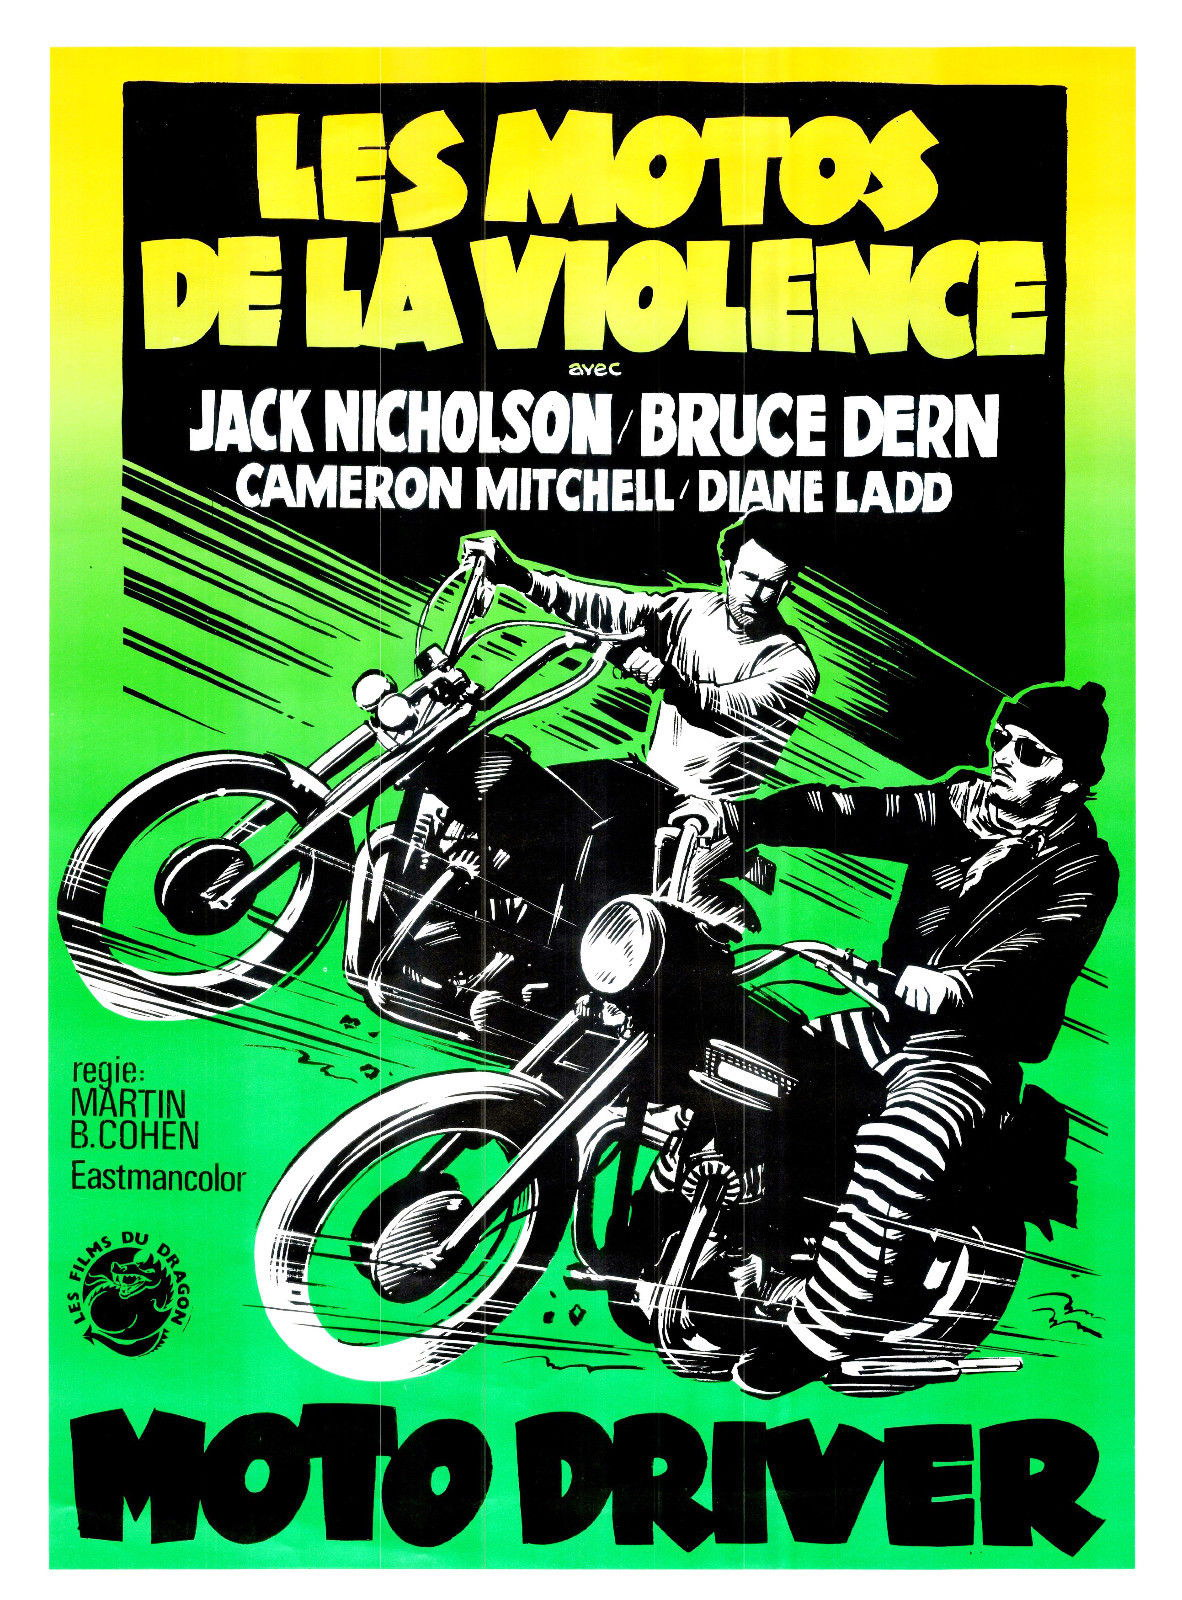 73209-The-Rebel-Rousers-1970-Movie-Wall-Print-Poster-Affiche